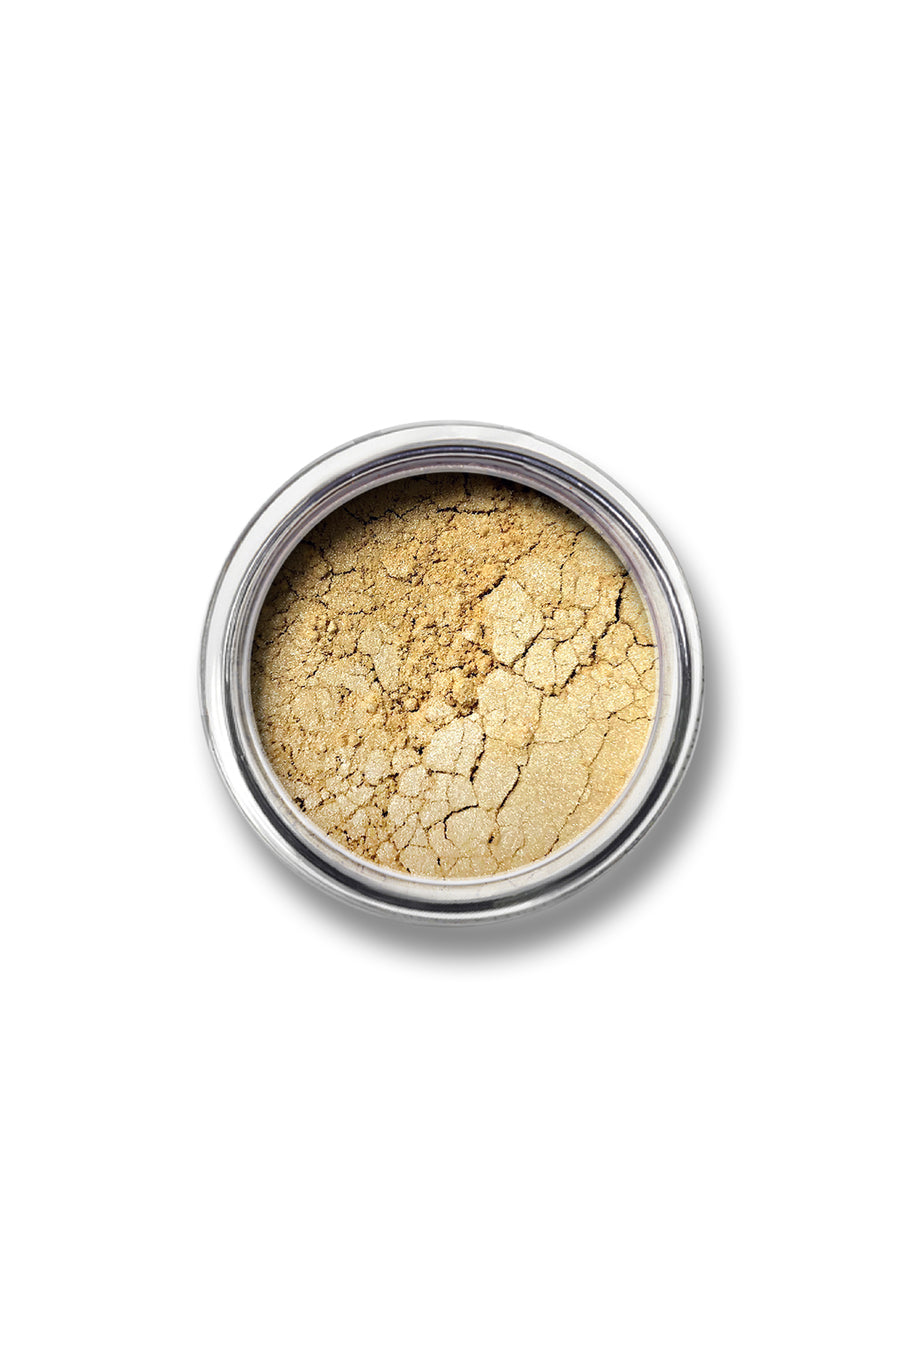 Shimmer Eyeshadow #7 - Soft Yellow - Blend Mineral Cosmetics